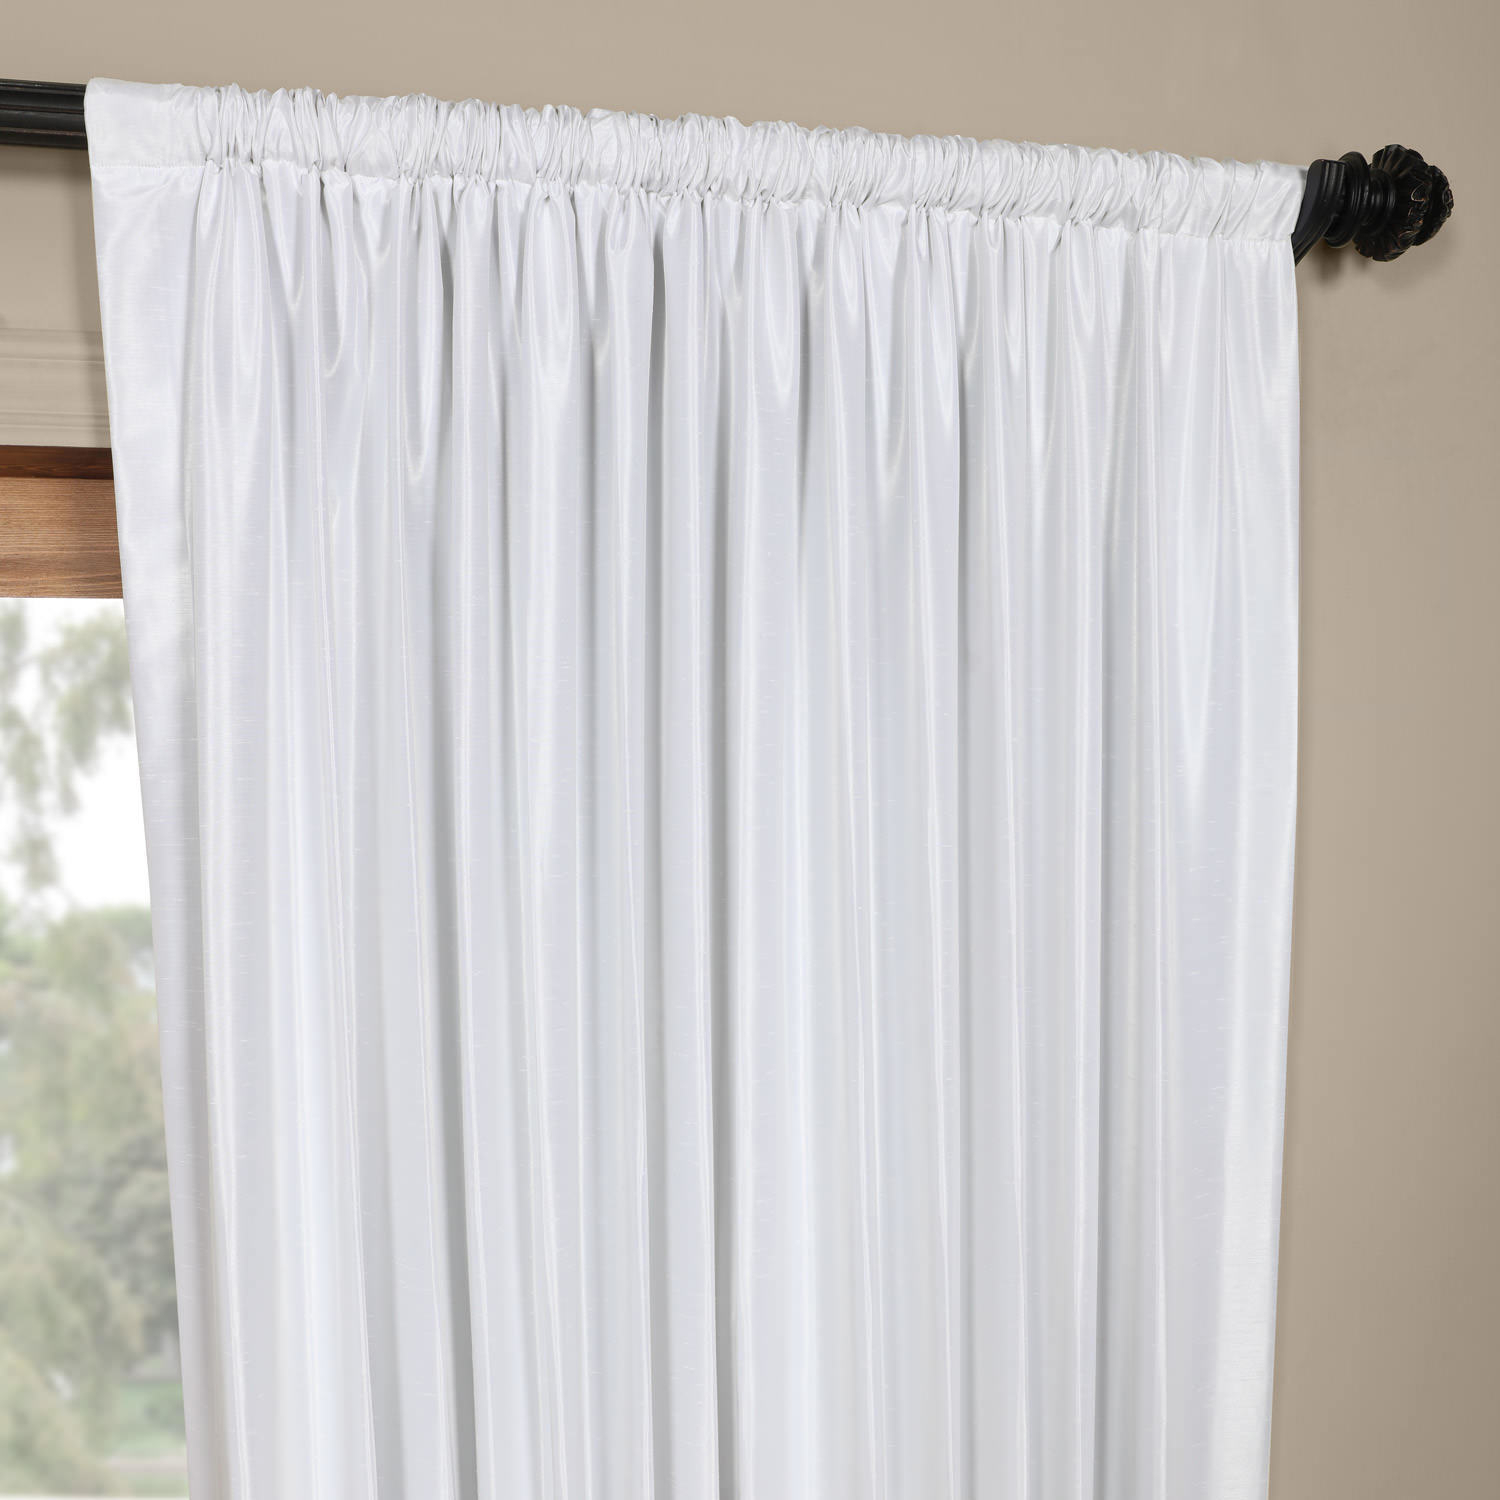 Exclusive Fabrics Faux Silk Extra Wide Blackout Single Curtain Panel Pertaining To Faux Silk Extra Wide Blackout Single Curtain Panels (View 7 of 20)